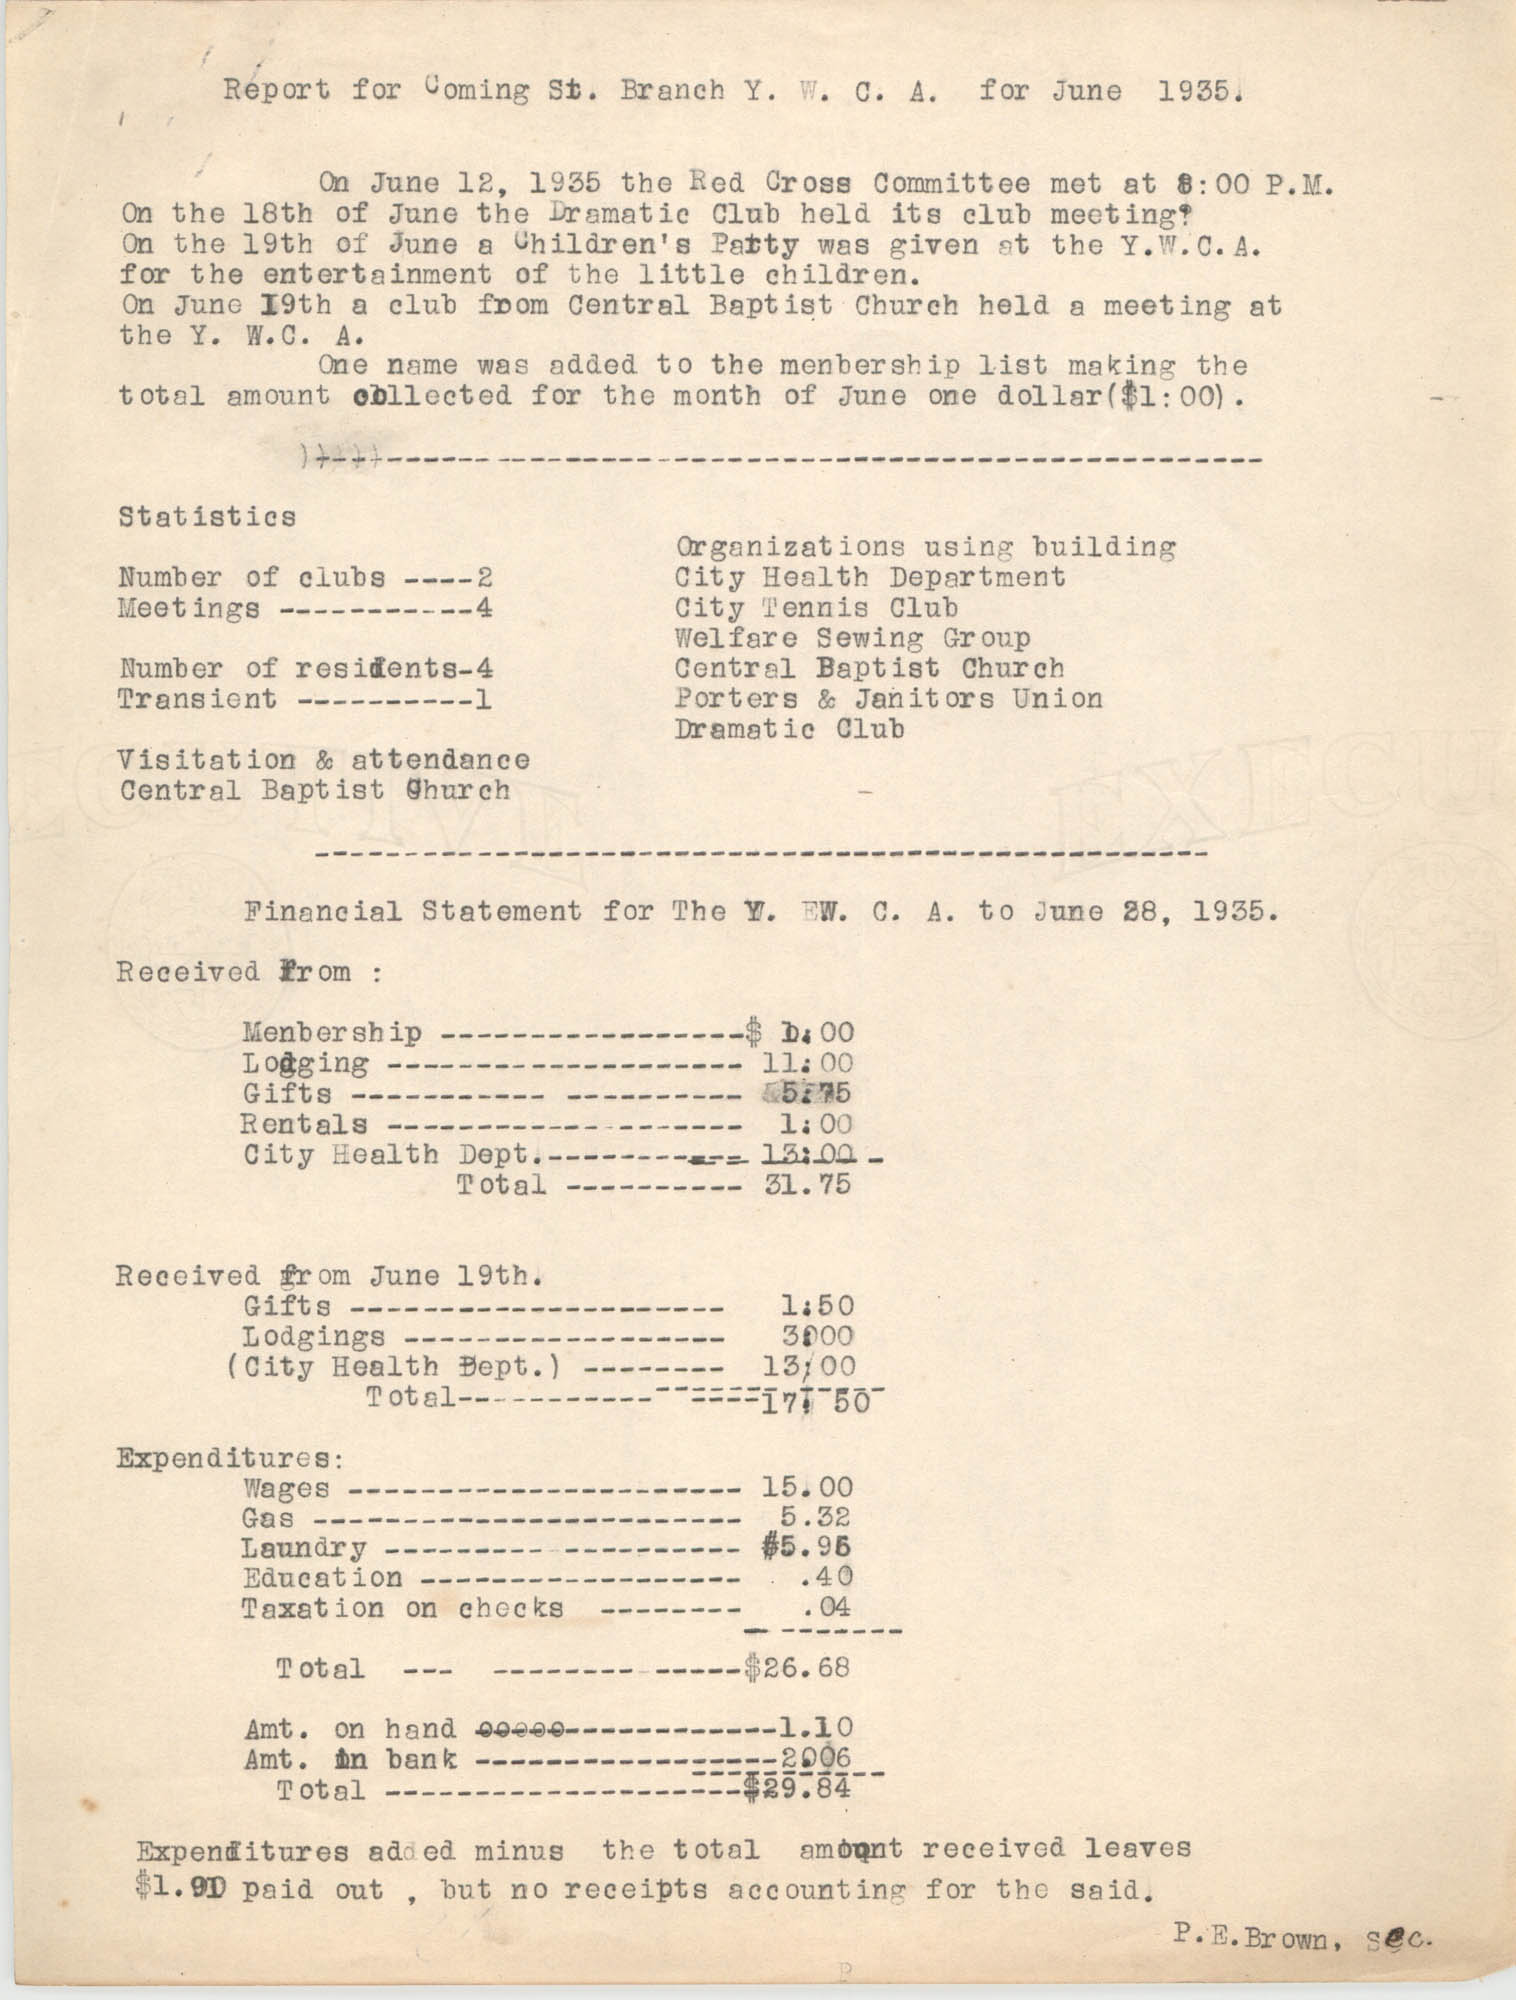 Monthly Report for the Coming Street Y.W.C.A., June 1935